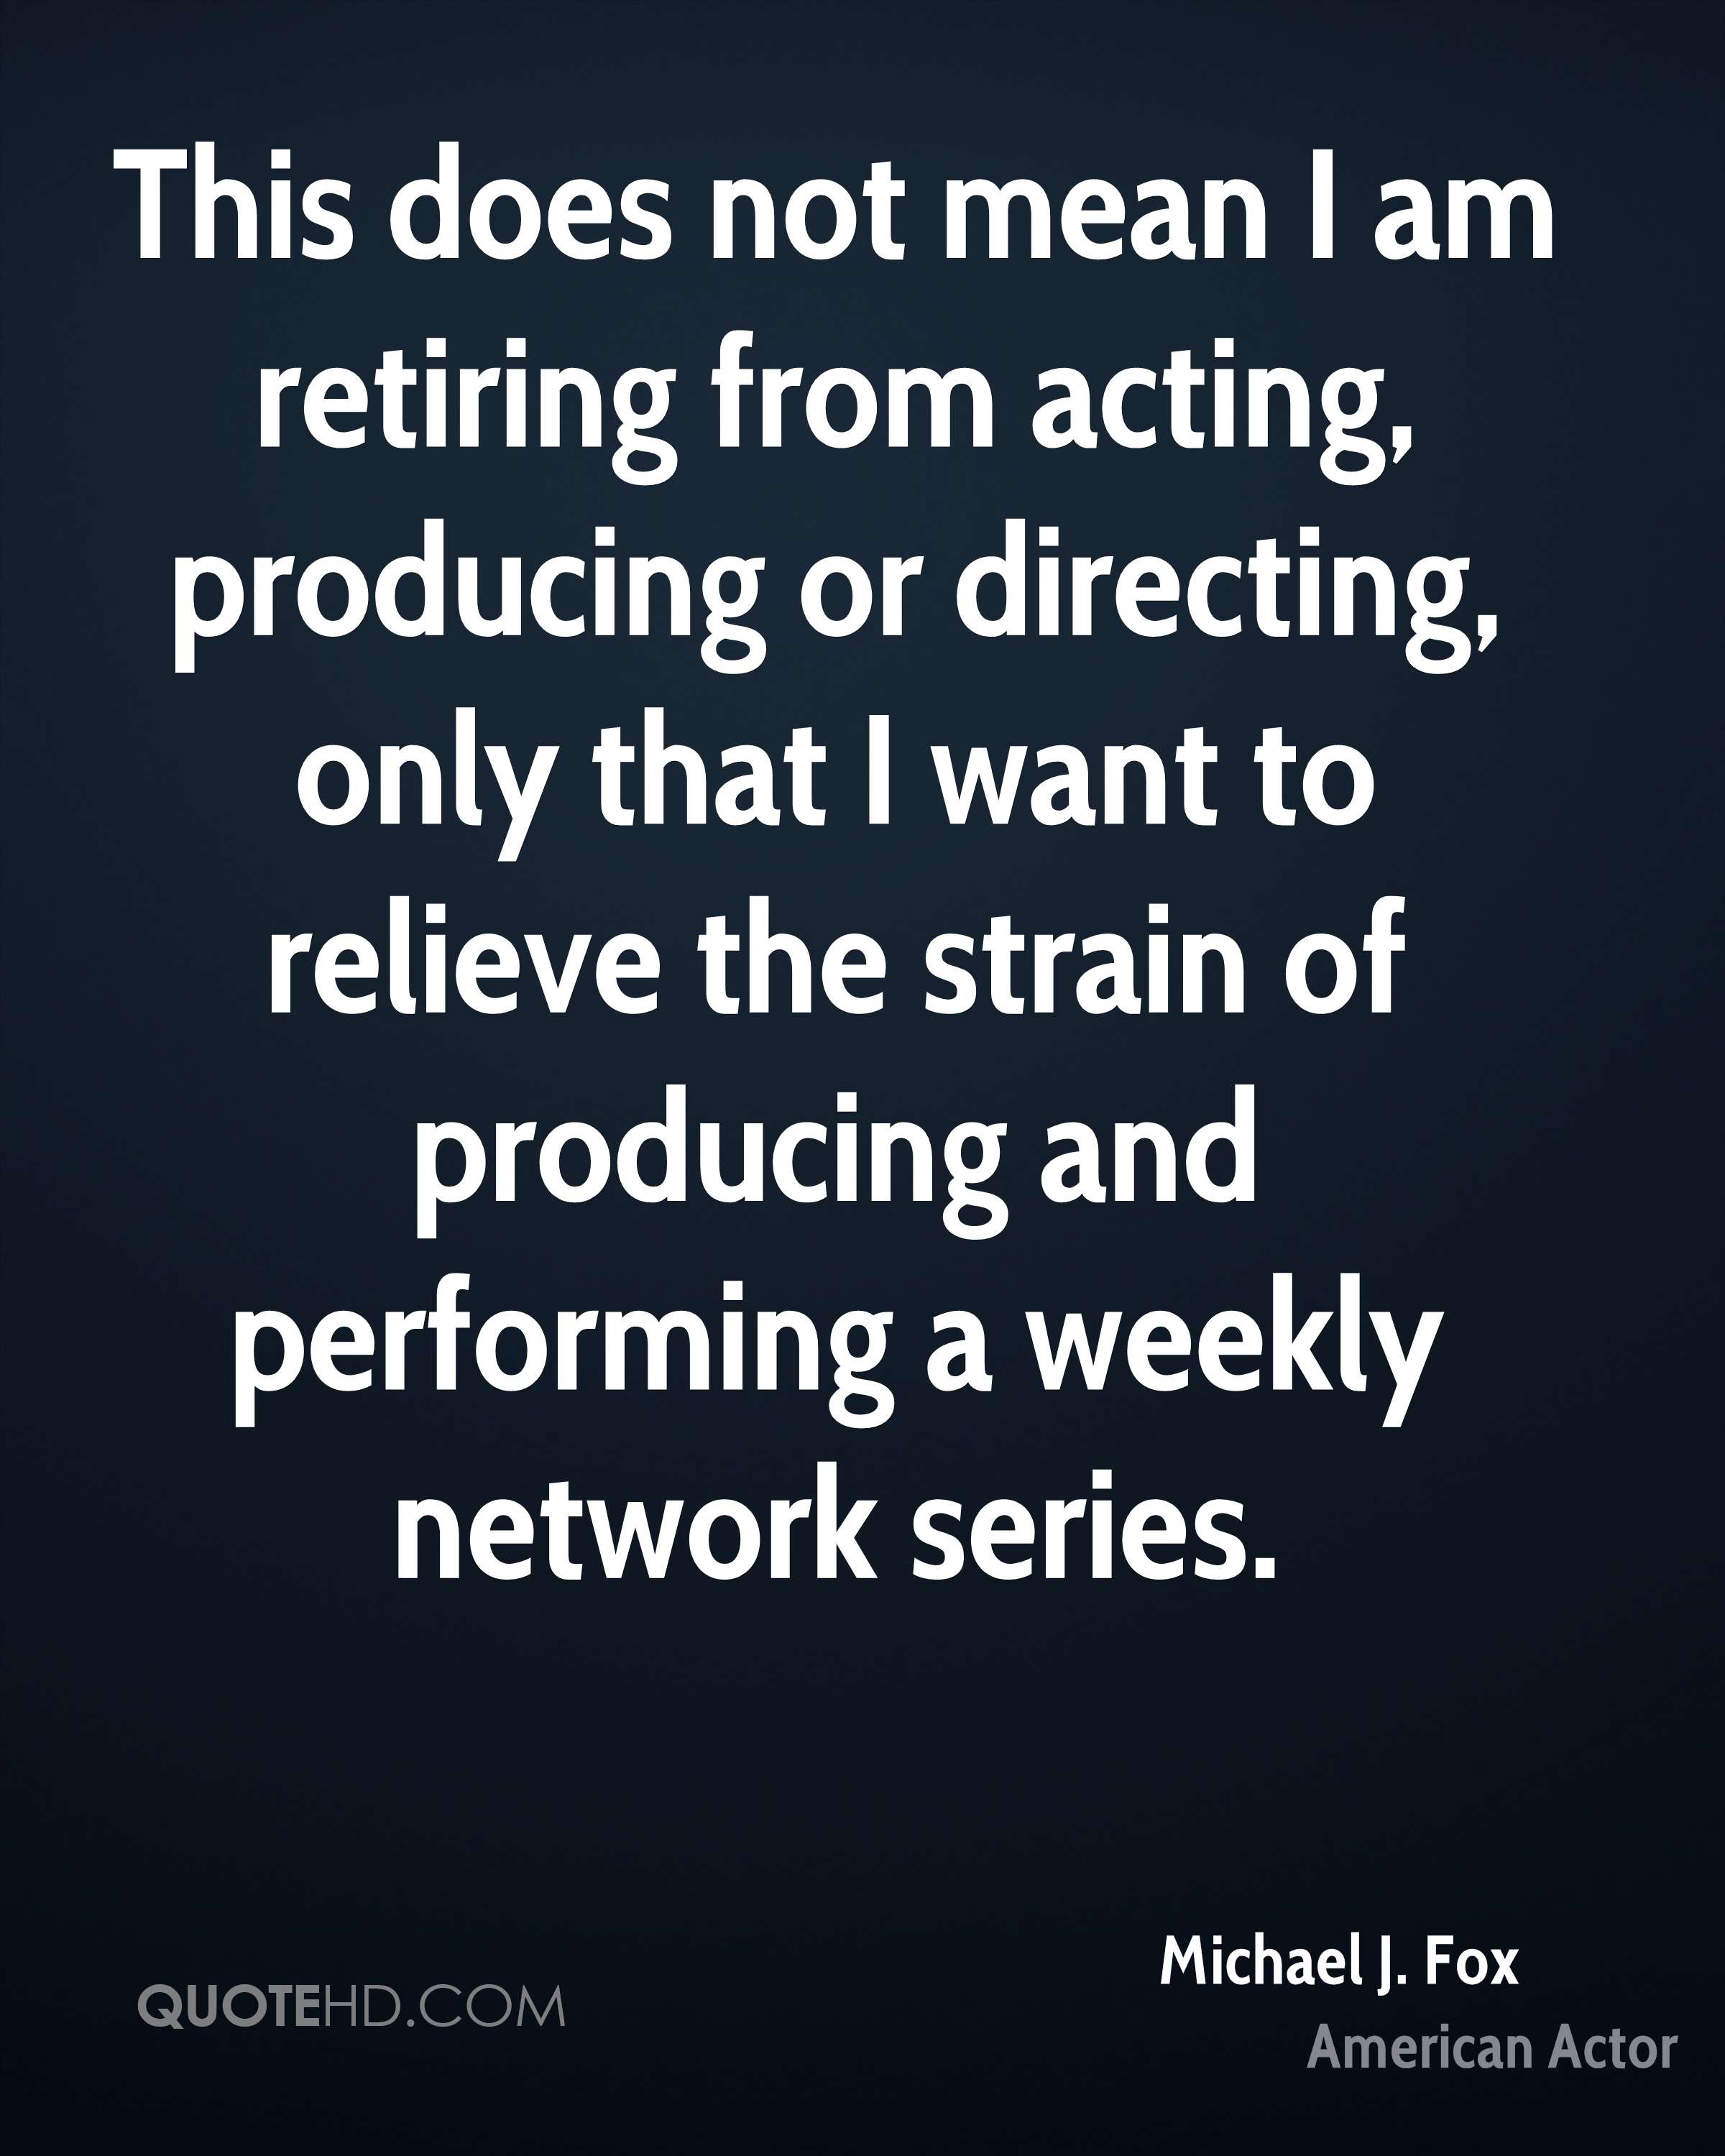 This does not mean I am retiring from acting, producing or directing, only that I want to relieve the strain of producing and performing a weekly network series.